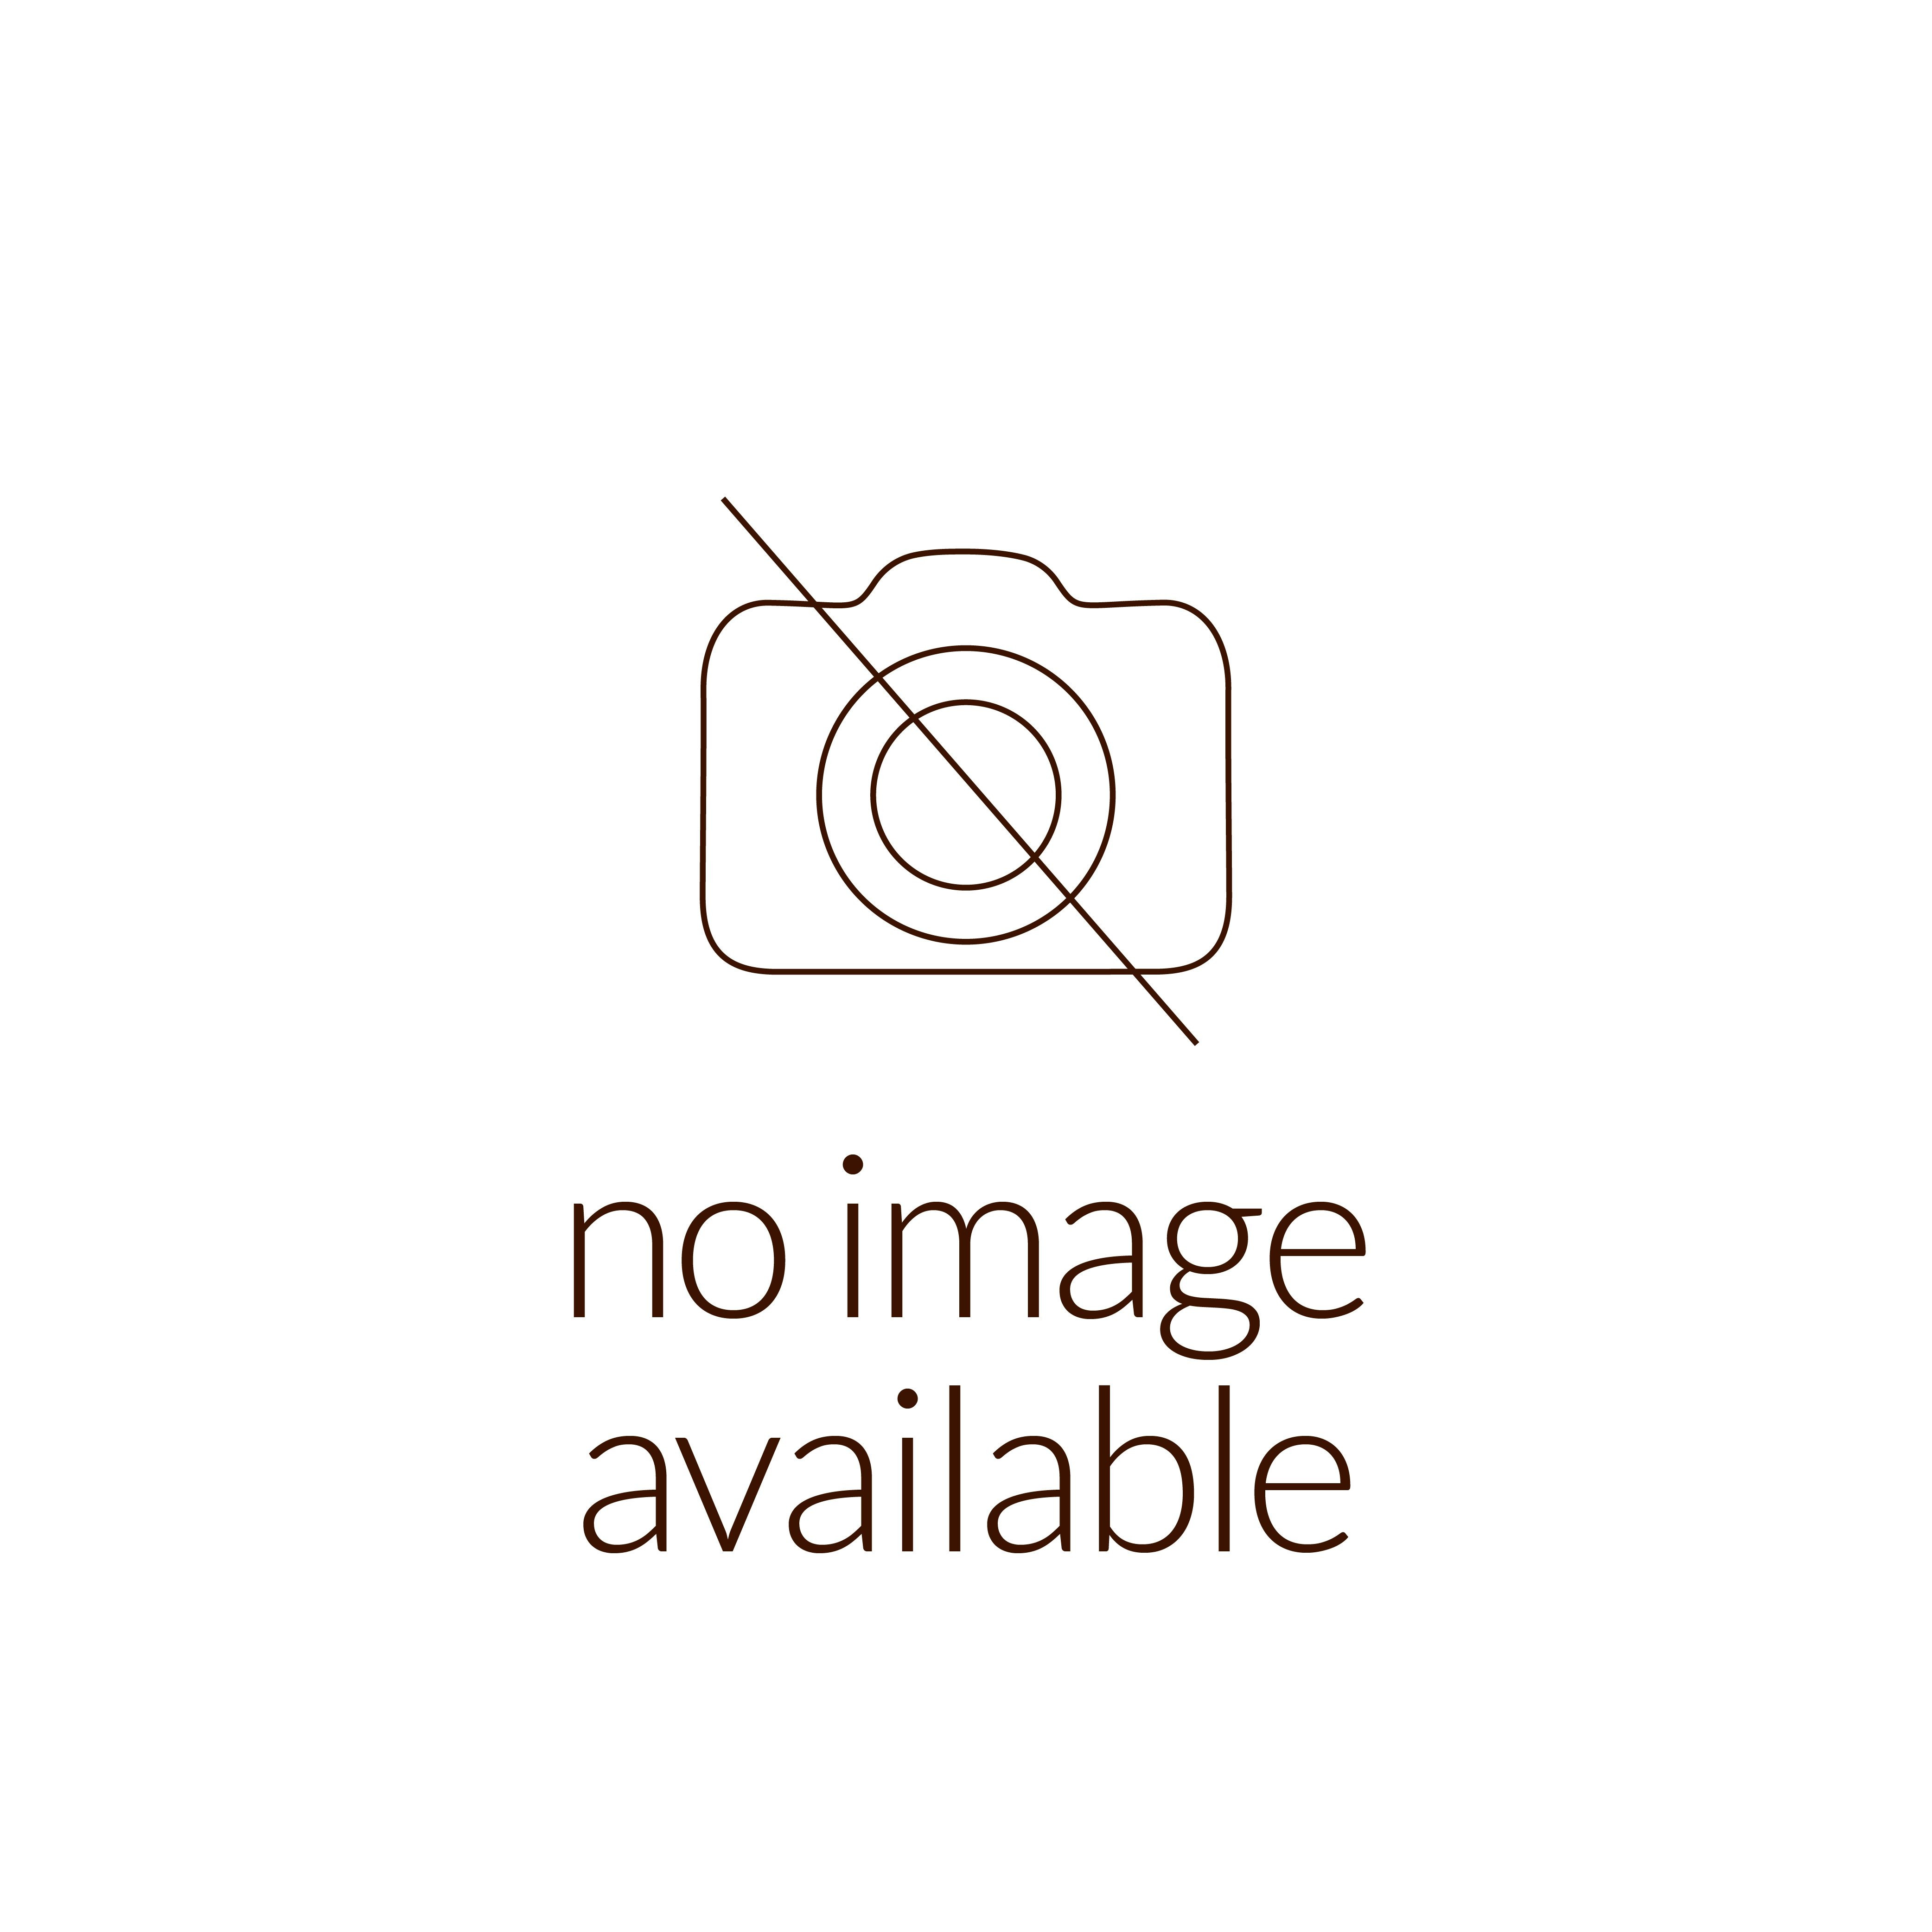 Intelligence Corps - 30.5mm, 17g, 14k Gold Proof Medal - IDF Fighting Units Series